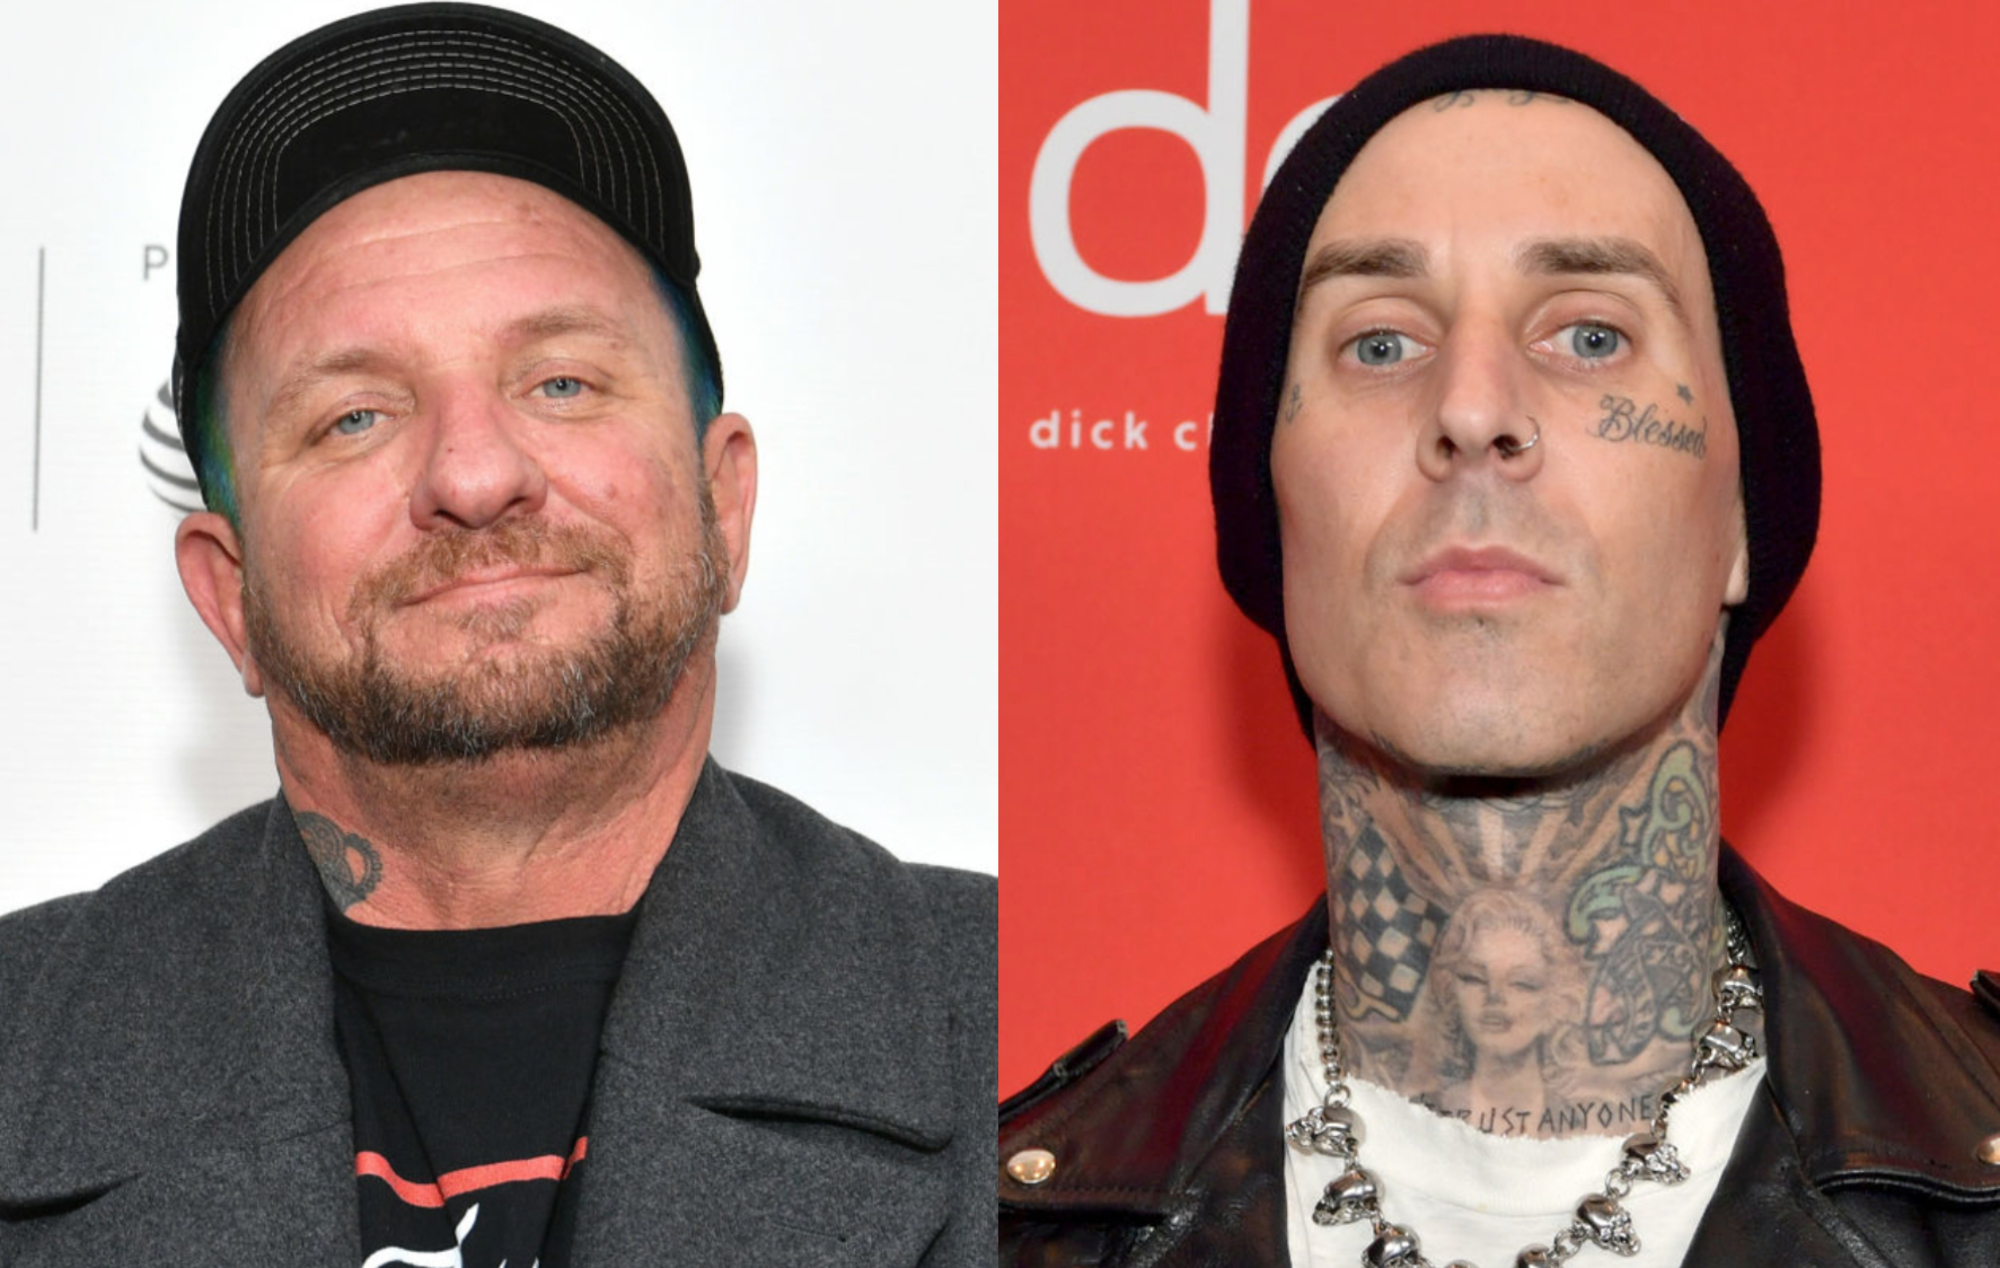 Sublime's Bud Gaugh says he had a hand in Travis Barker joining Blink-182